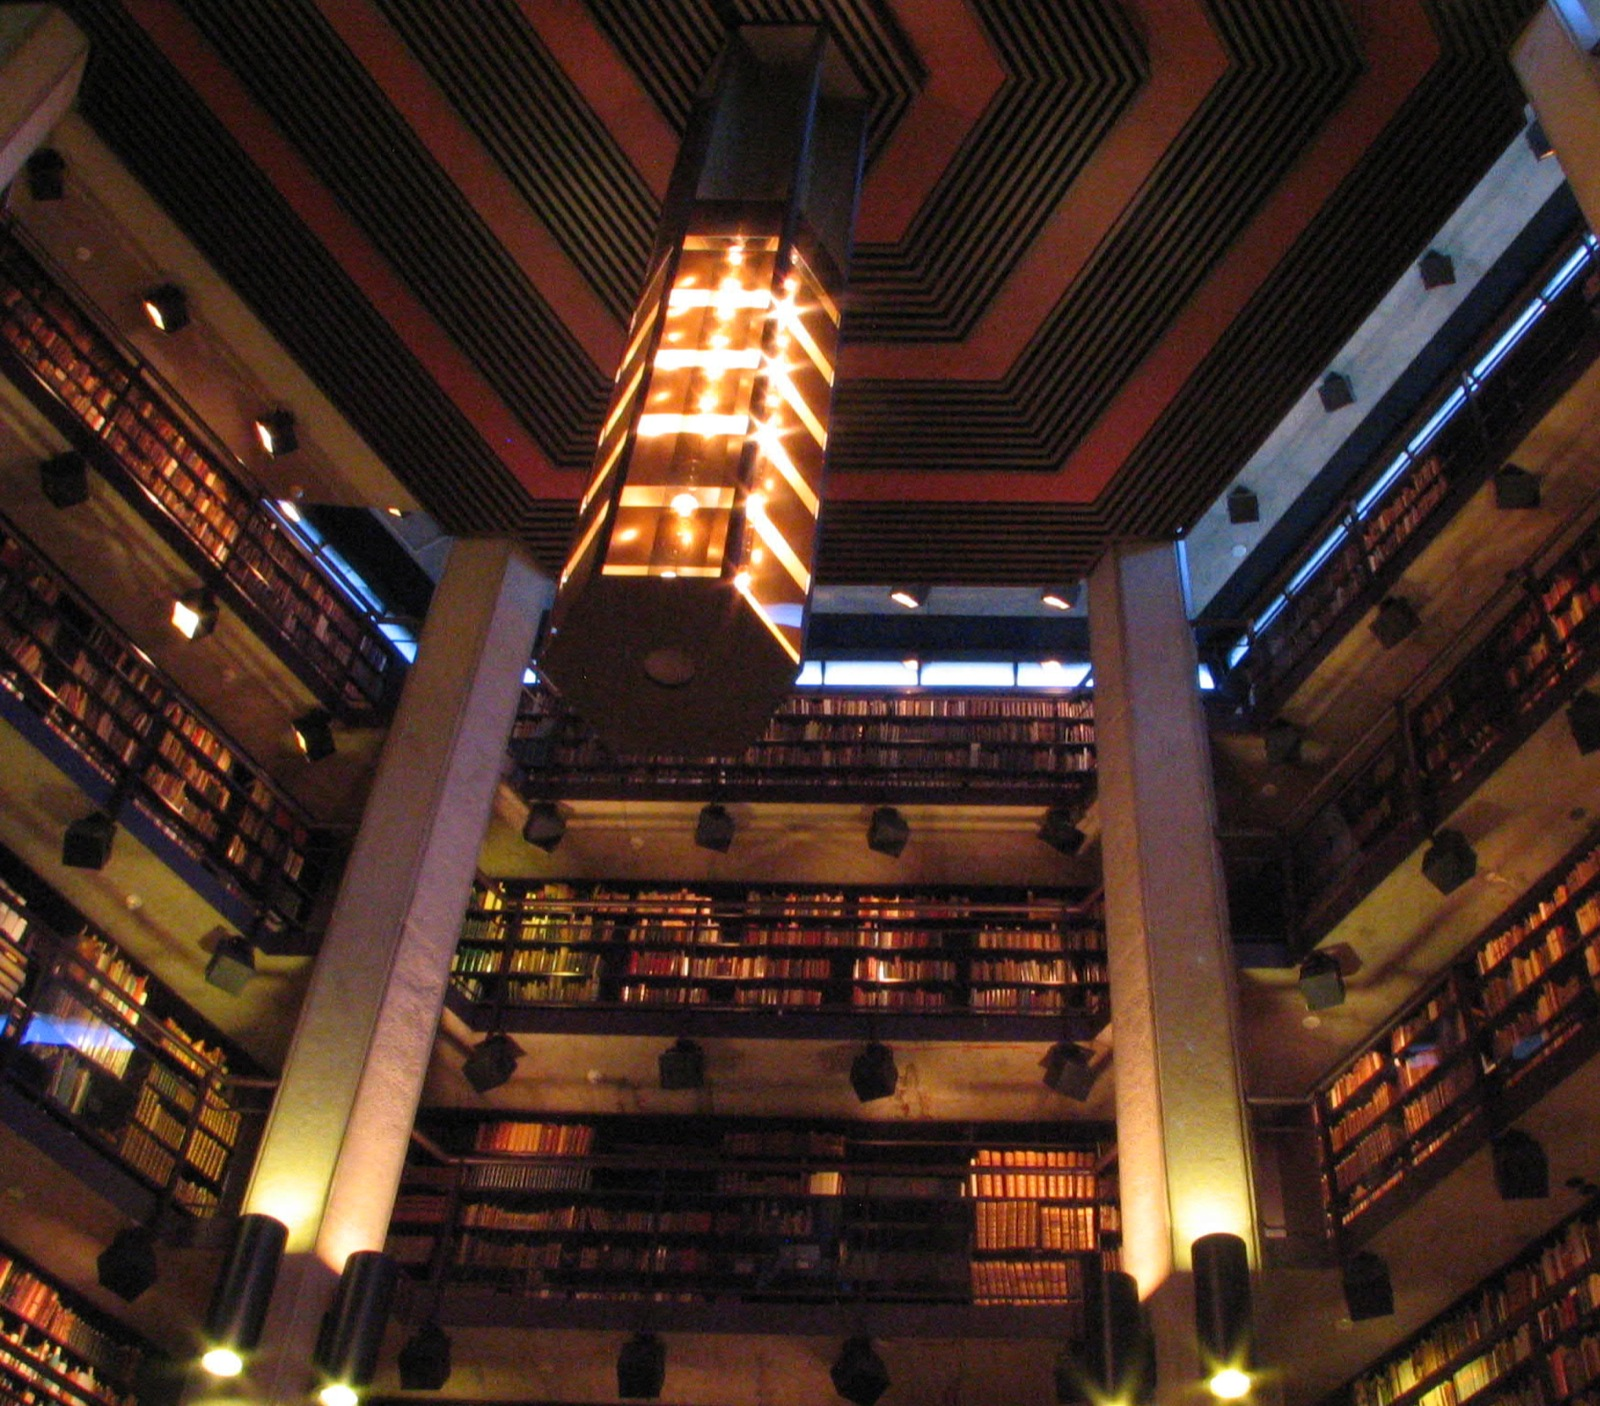 Thomas Fisher Rare Book Library by bookchen